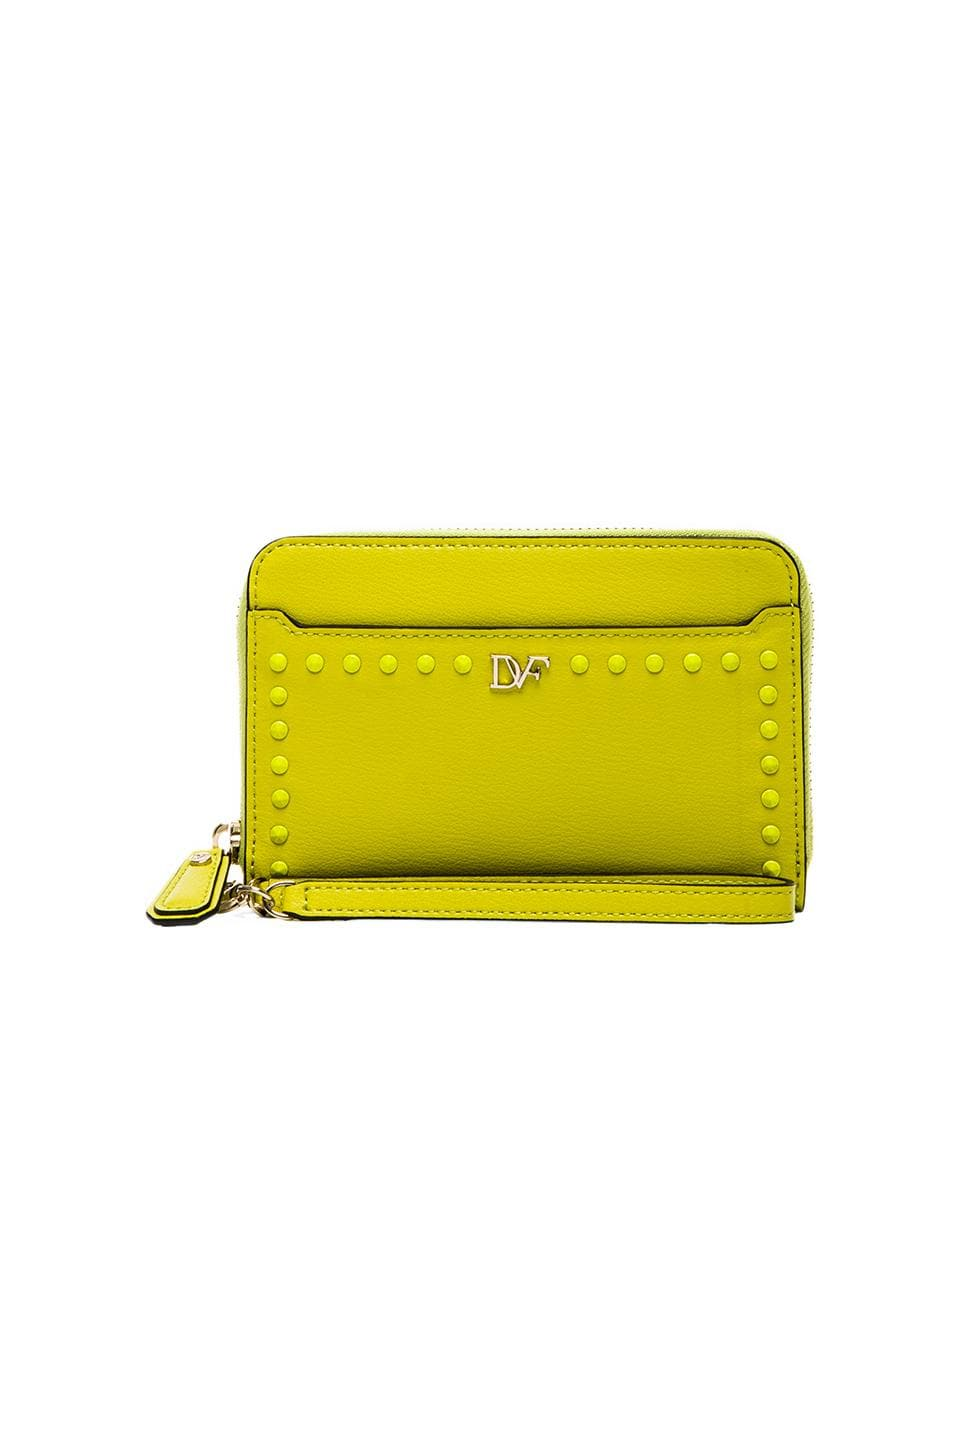 Diane von Furstenberg Studded Leather Wallet in Electric Lime